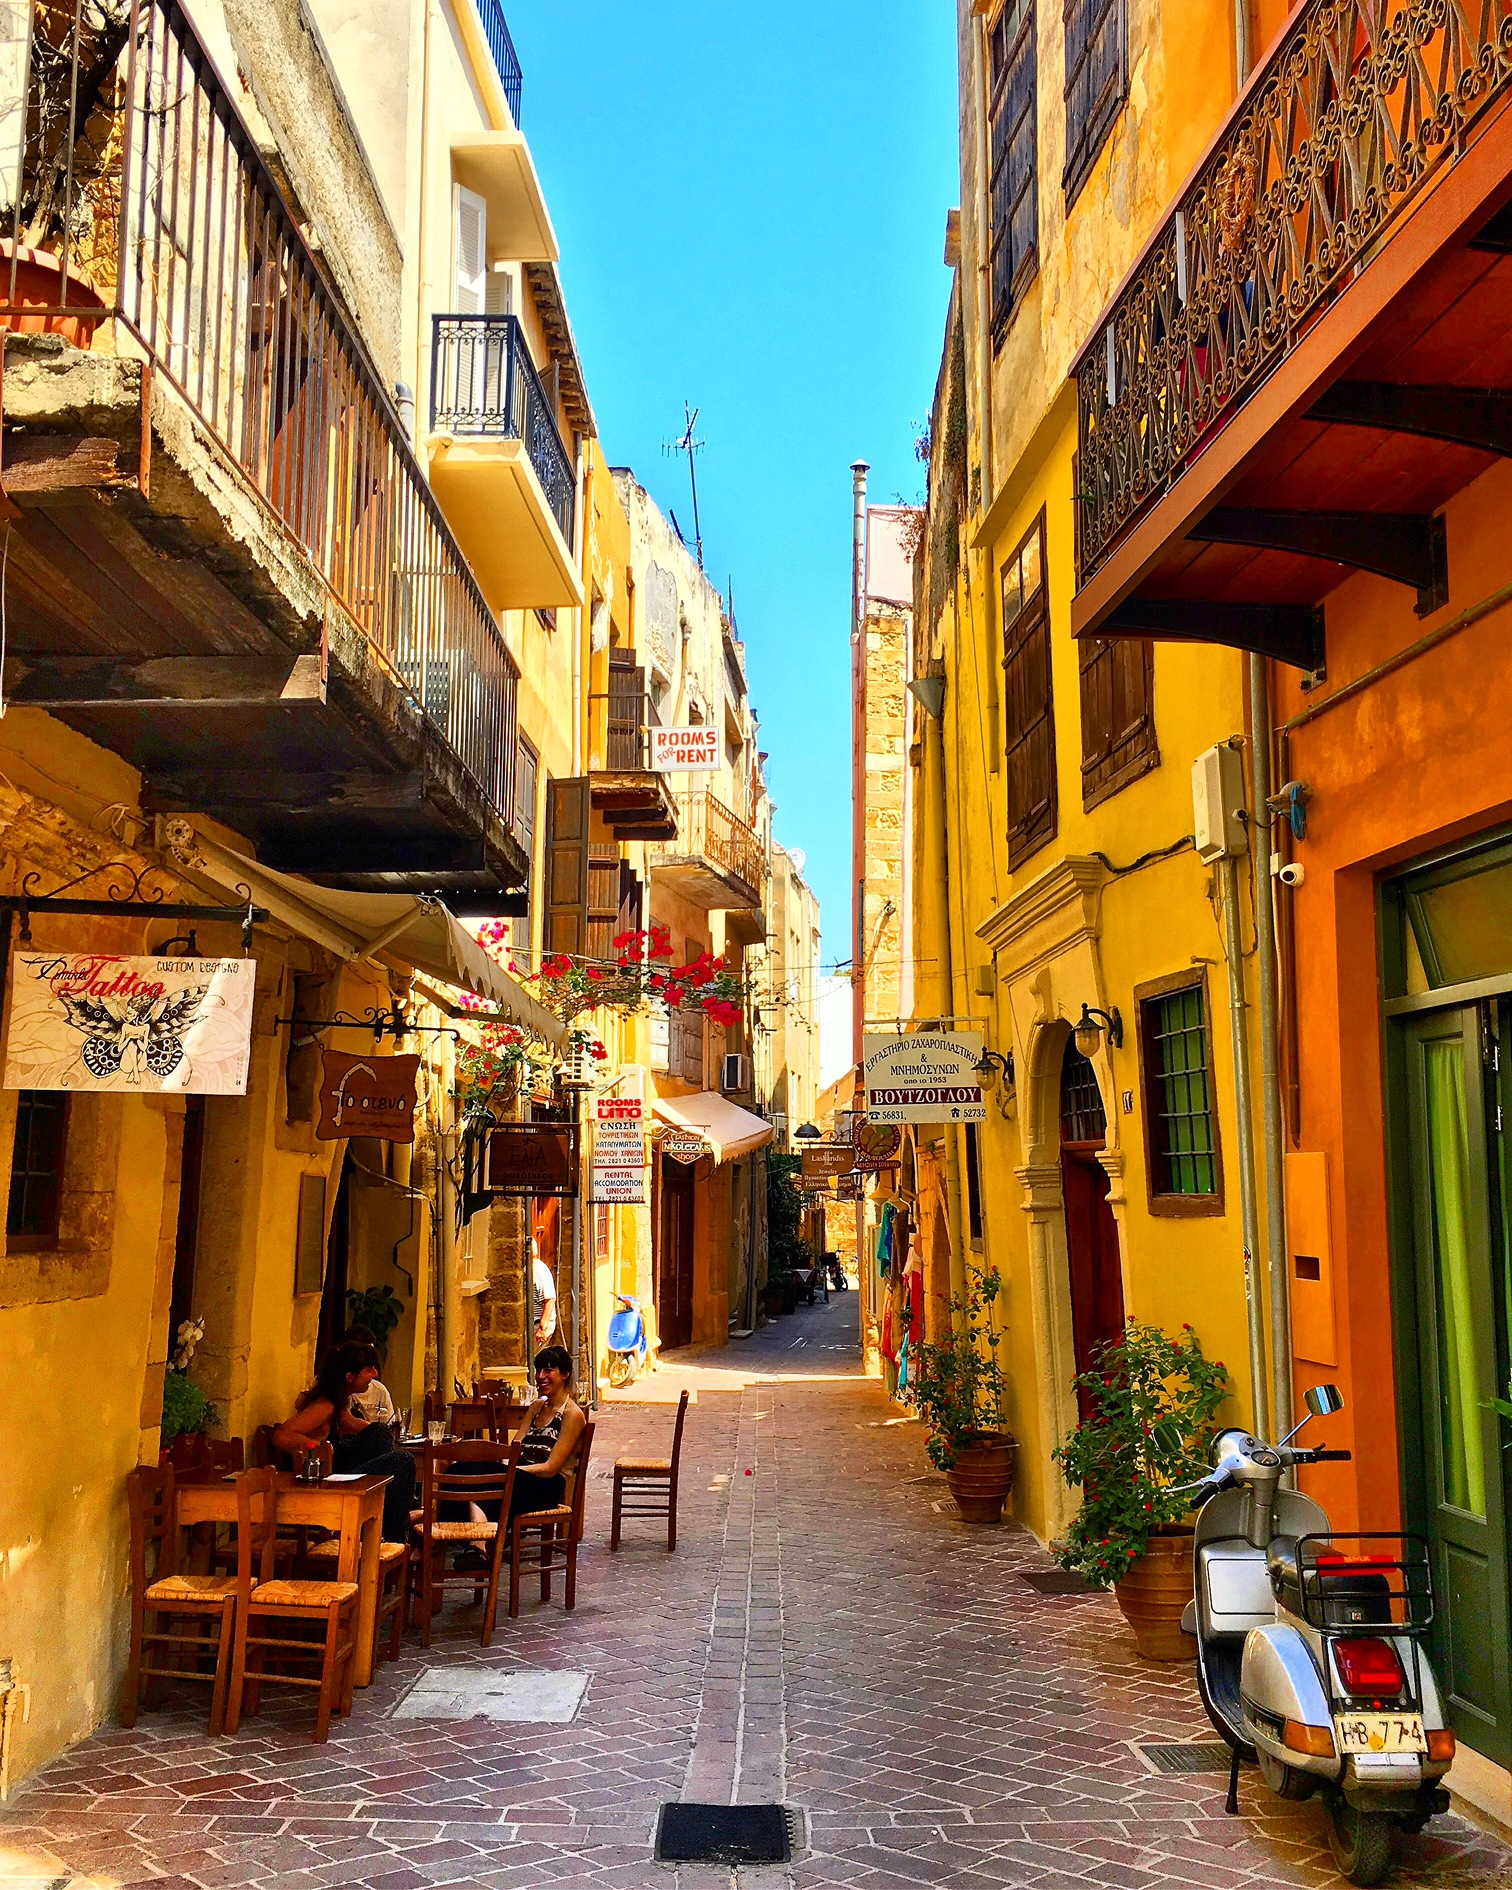 Chania-Old-Town2_Crete CRETE- THE BEST OF THE CHANIA REGION